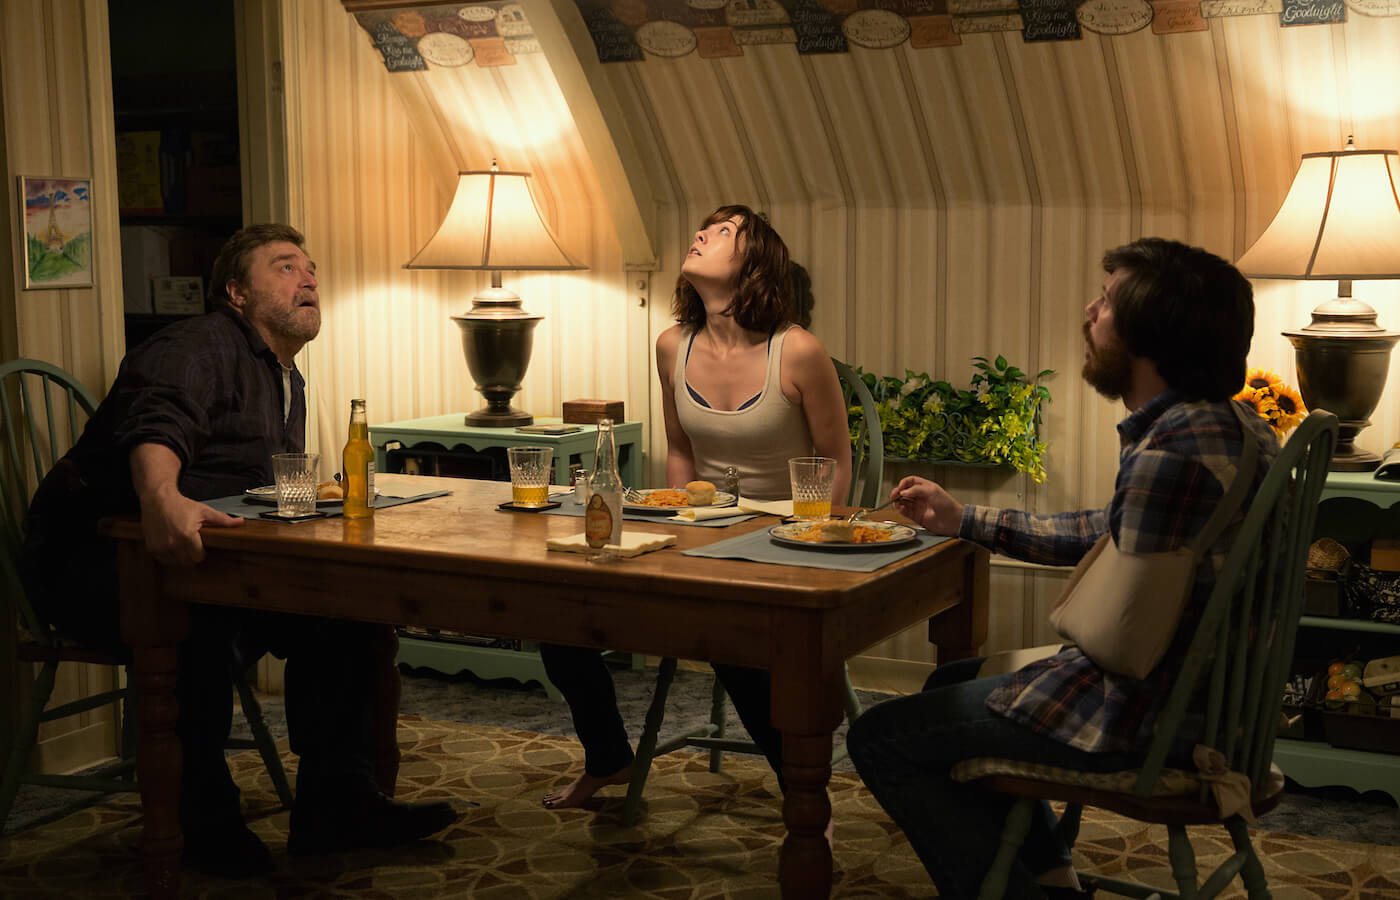 10-cloverfield-lane-john-goodman-mary-elizabeth-winstead-john-gallagher-jr.jpg